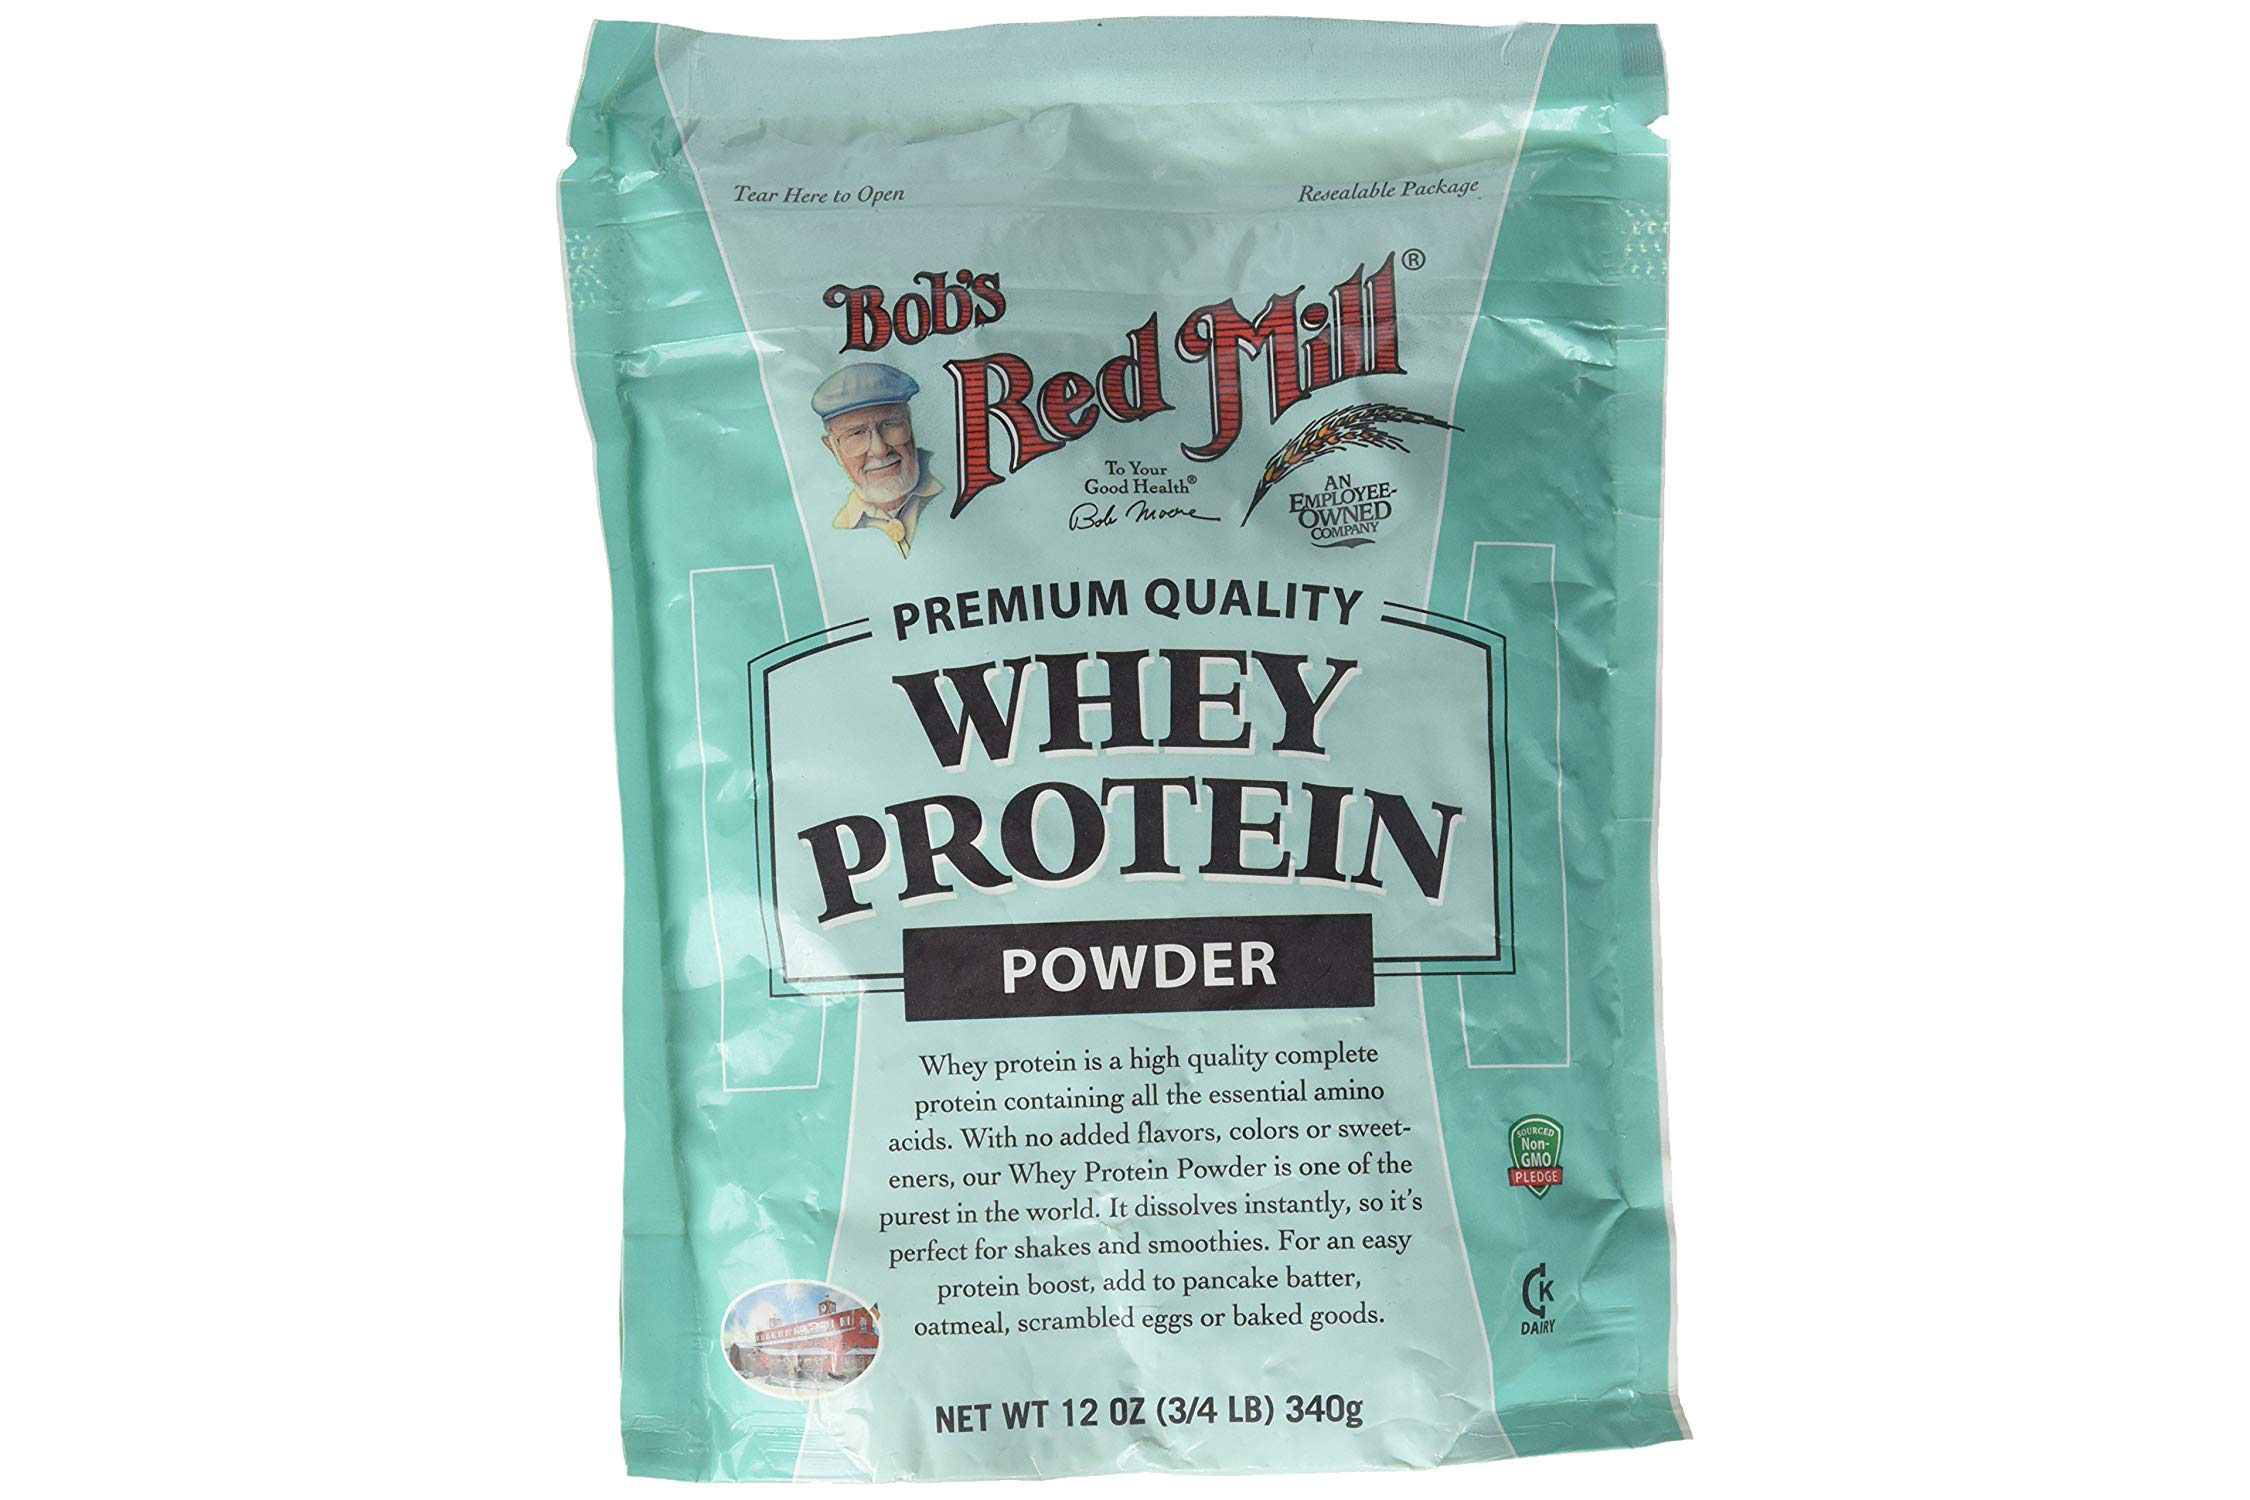 Bob's Red Mill protein